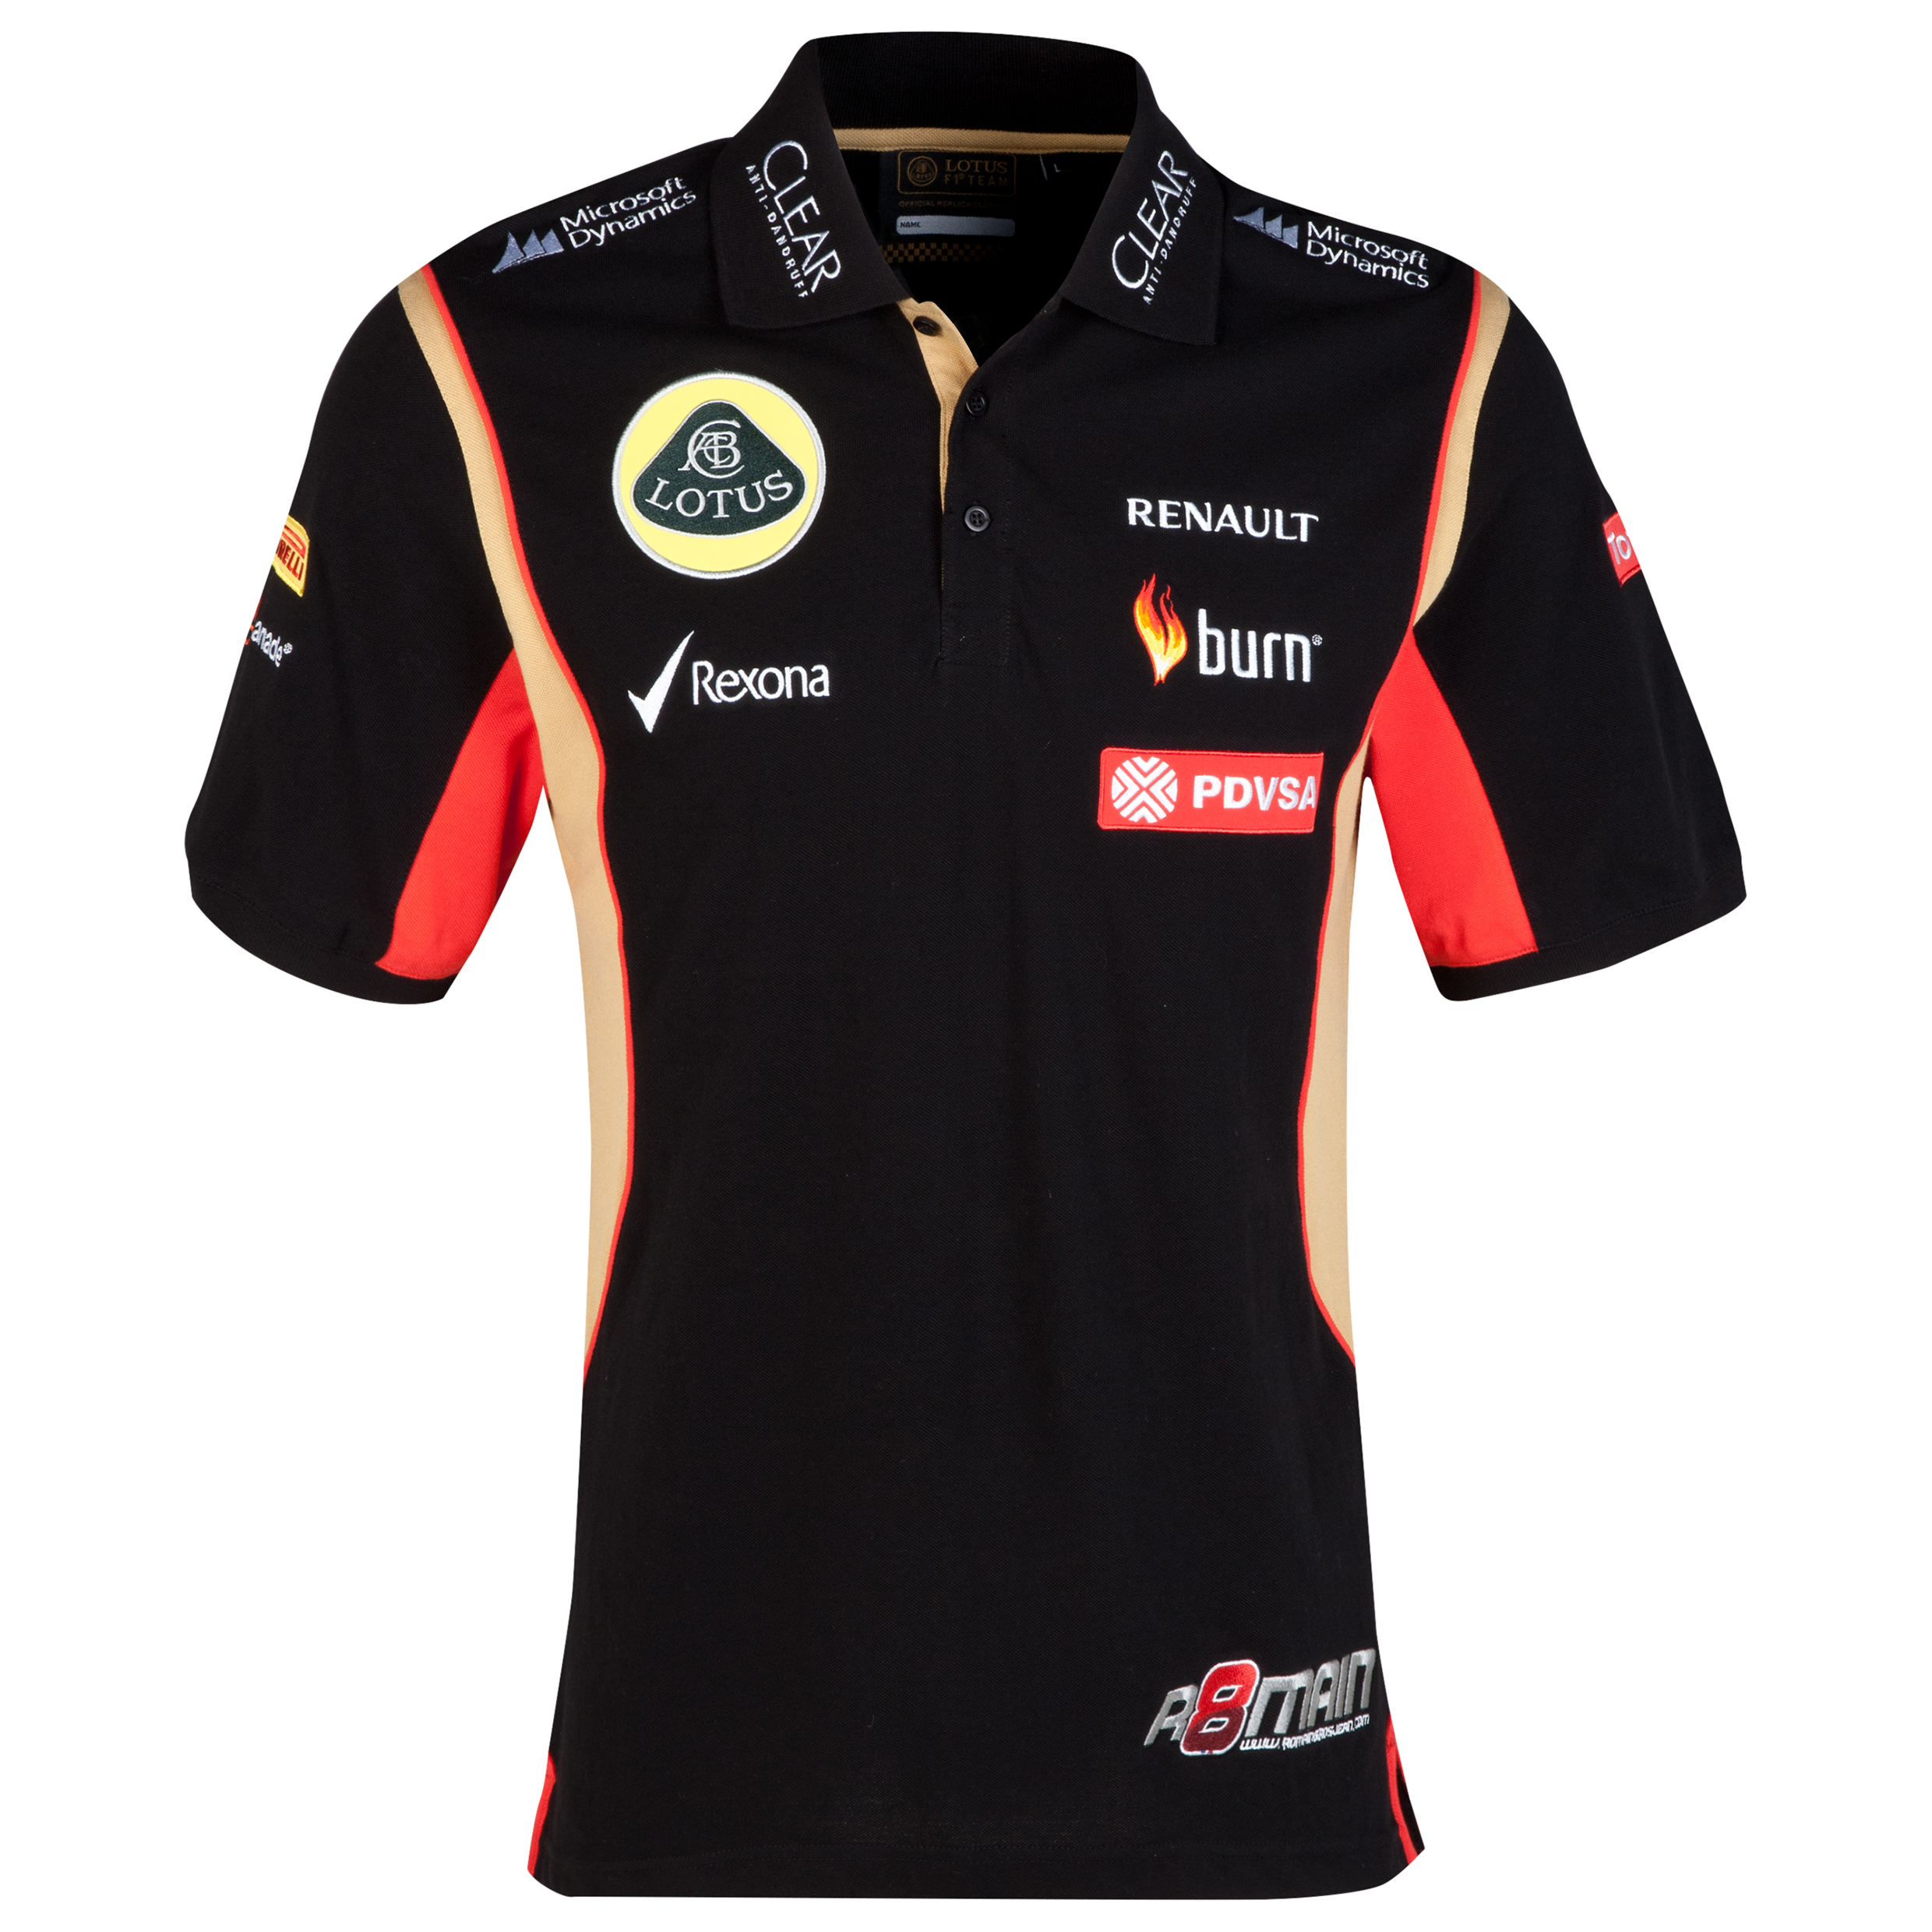 Lotus F1 Driver Replica Polo - Grosjean